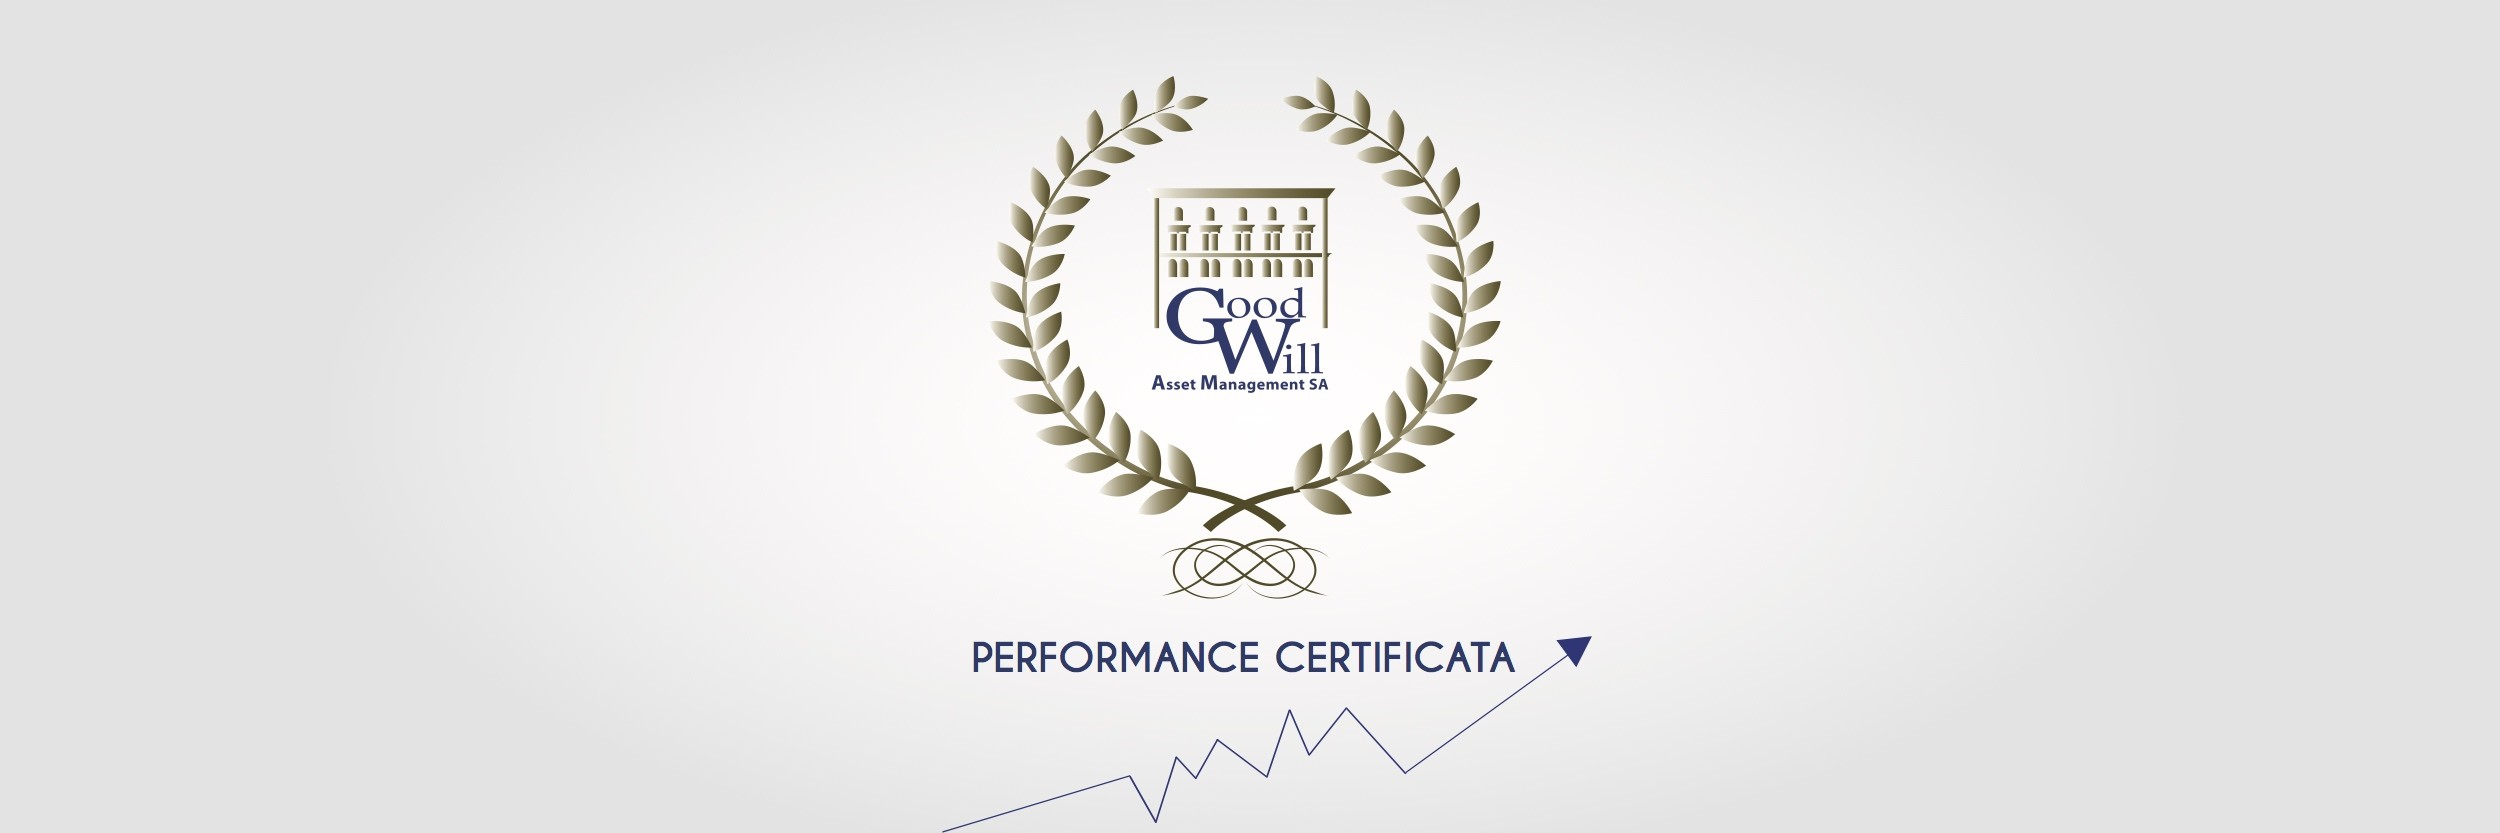 PERFORMANCE CERTIFICATA